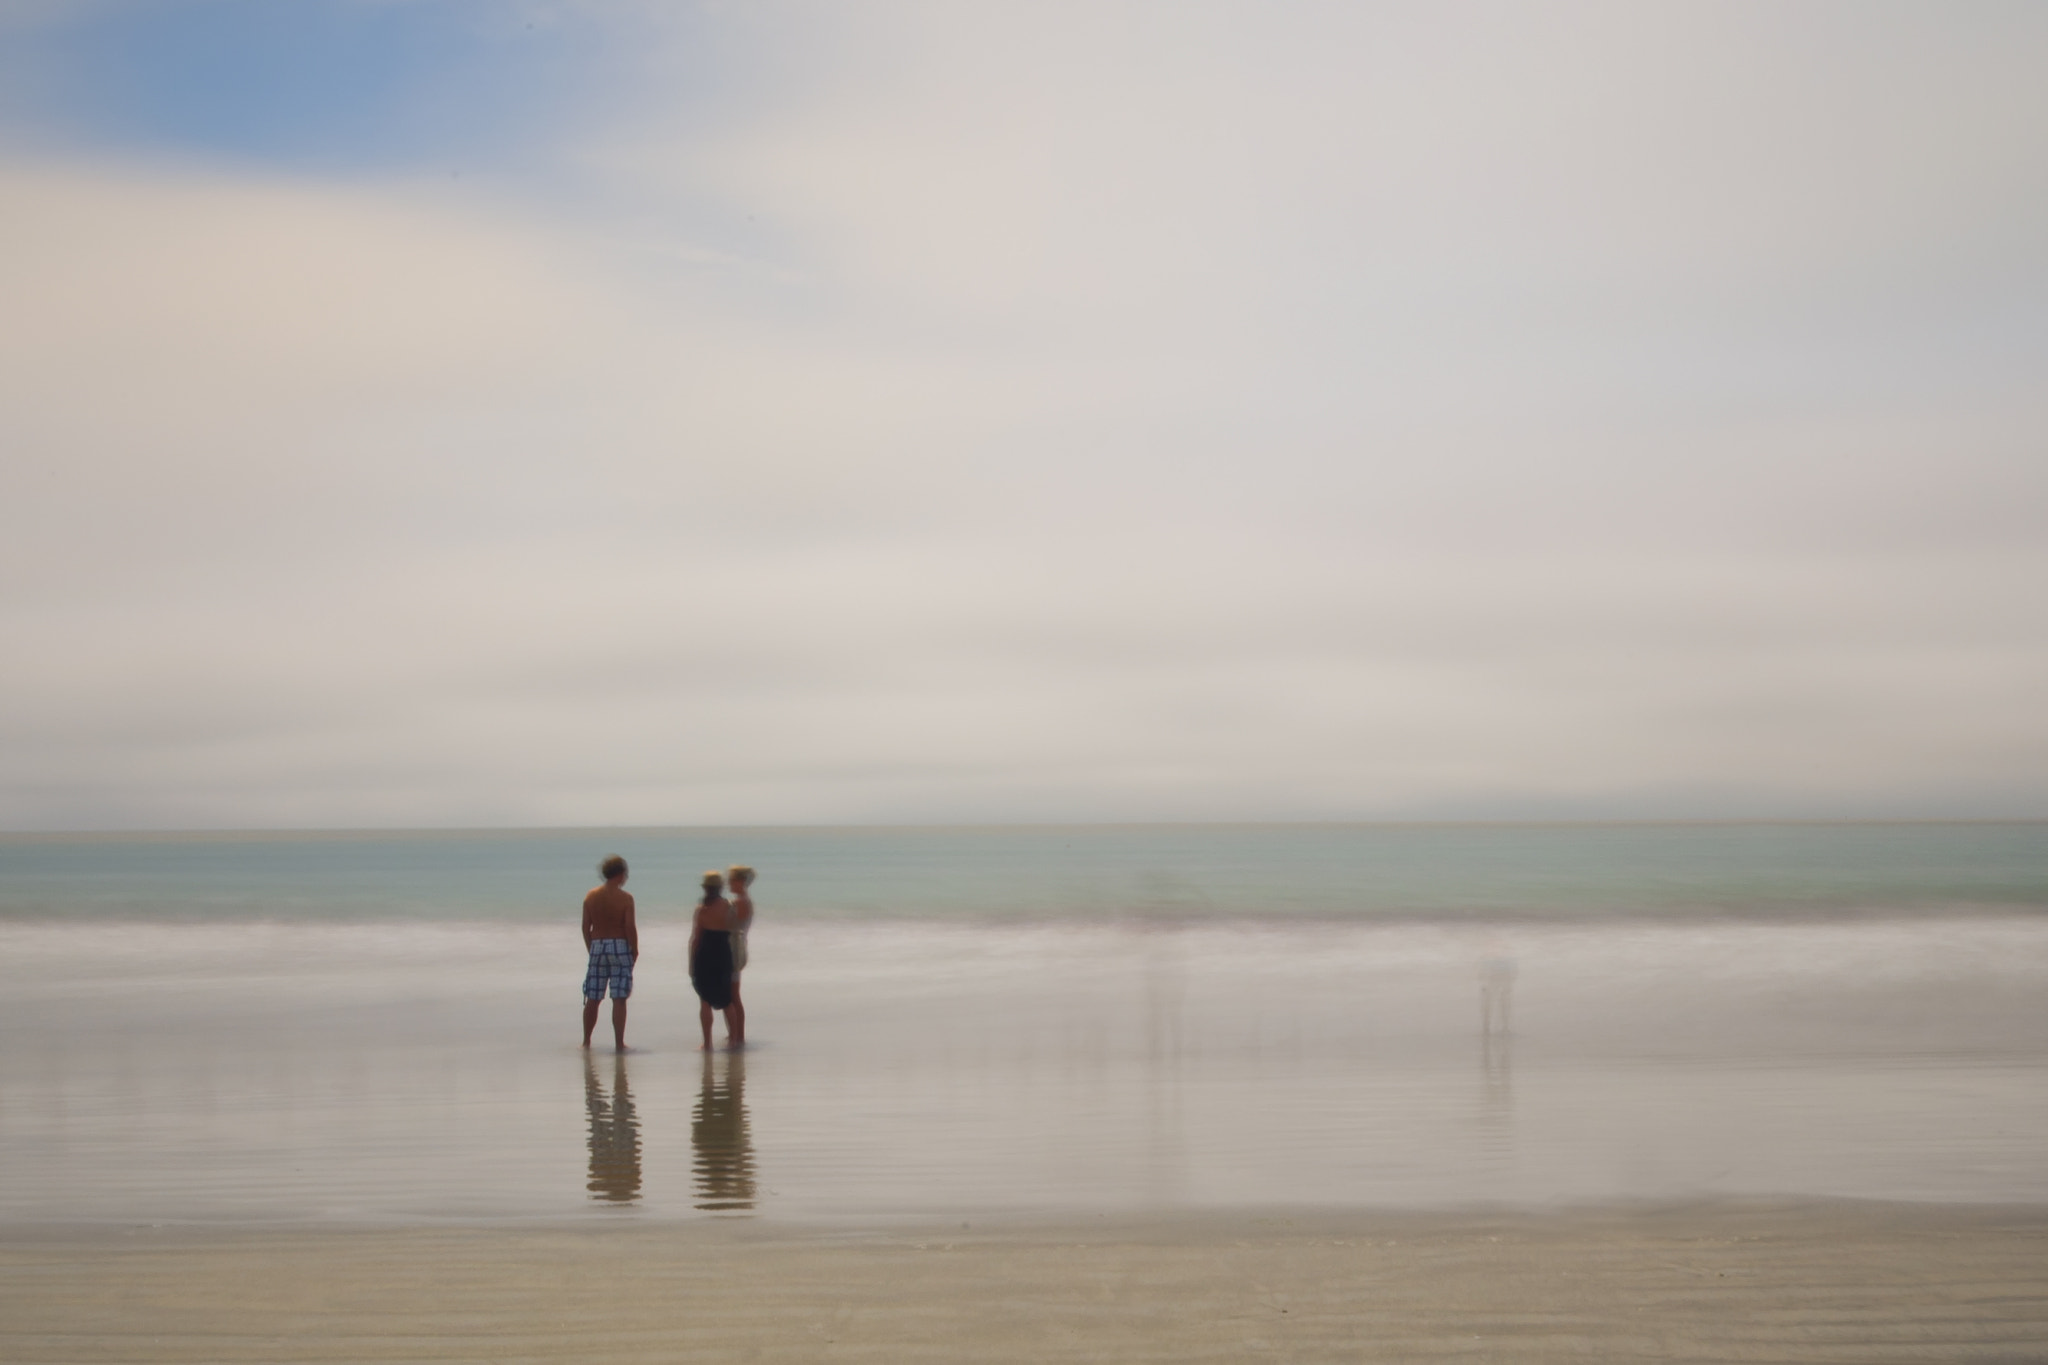 Photograph beach trio by michael nothum on 500px